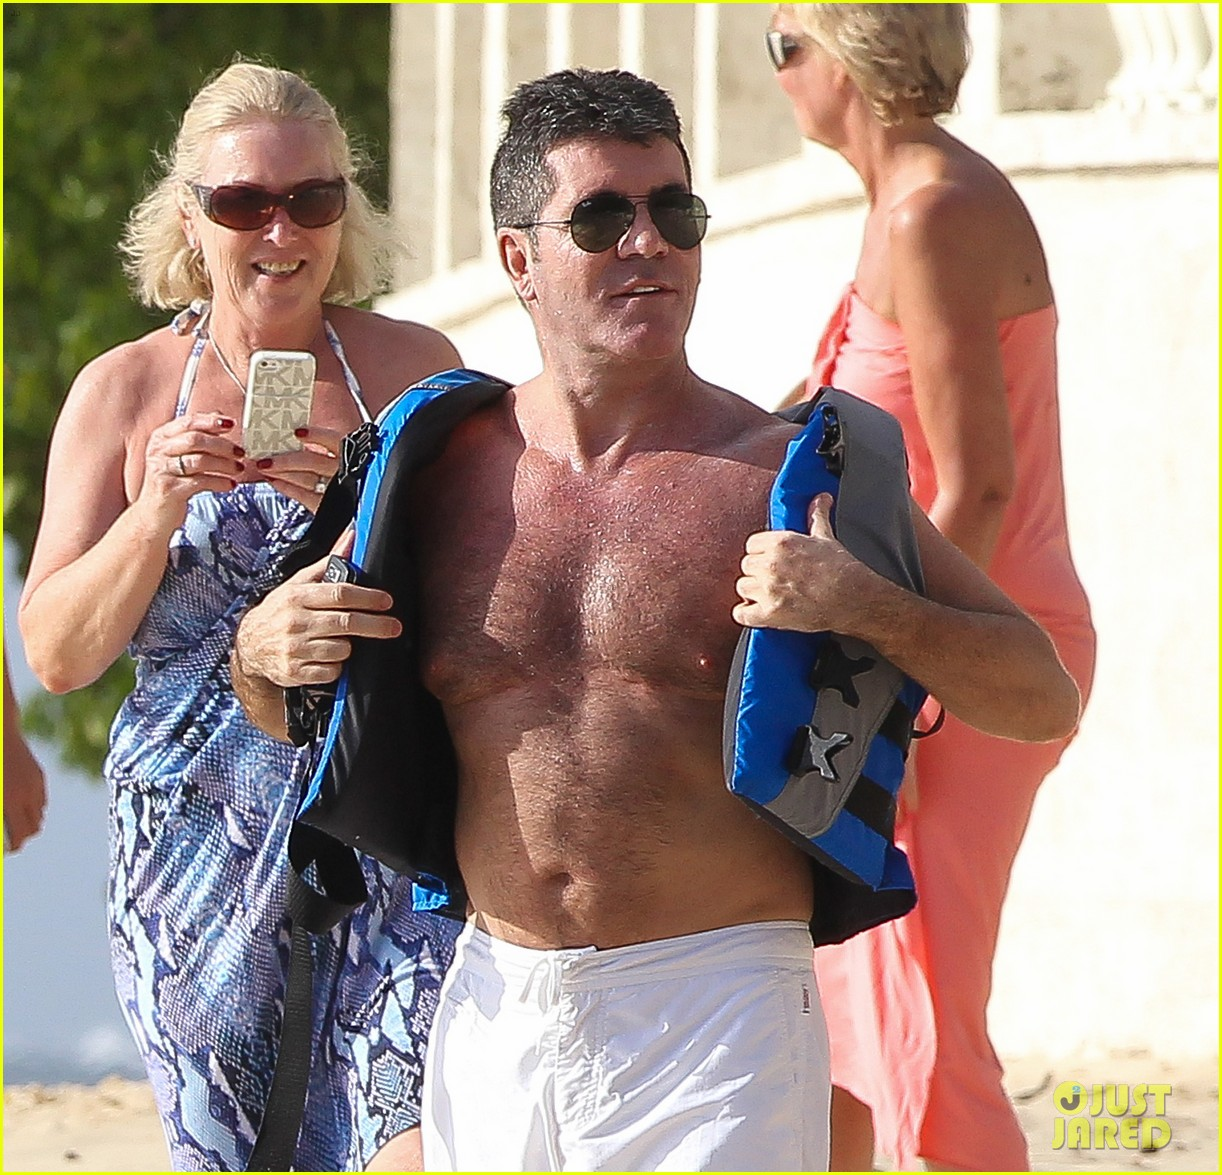 shirtless simon cowell draws large female crowd at the beach 02